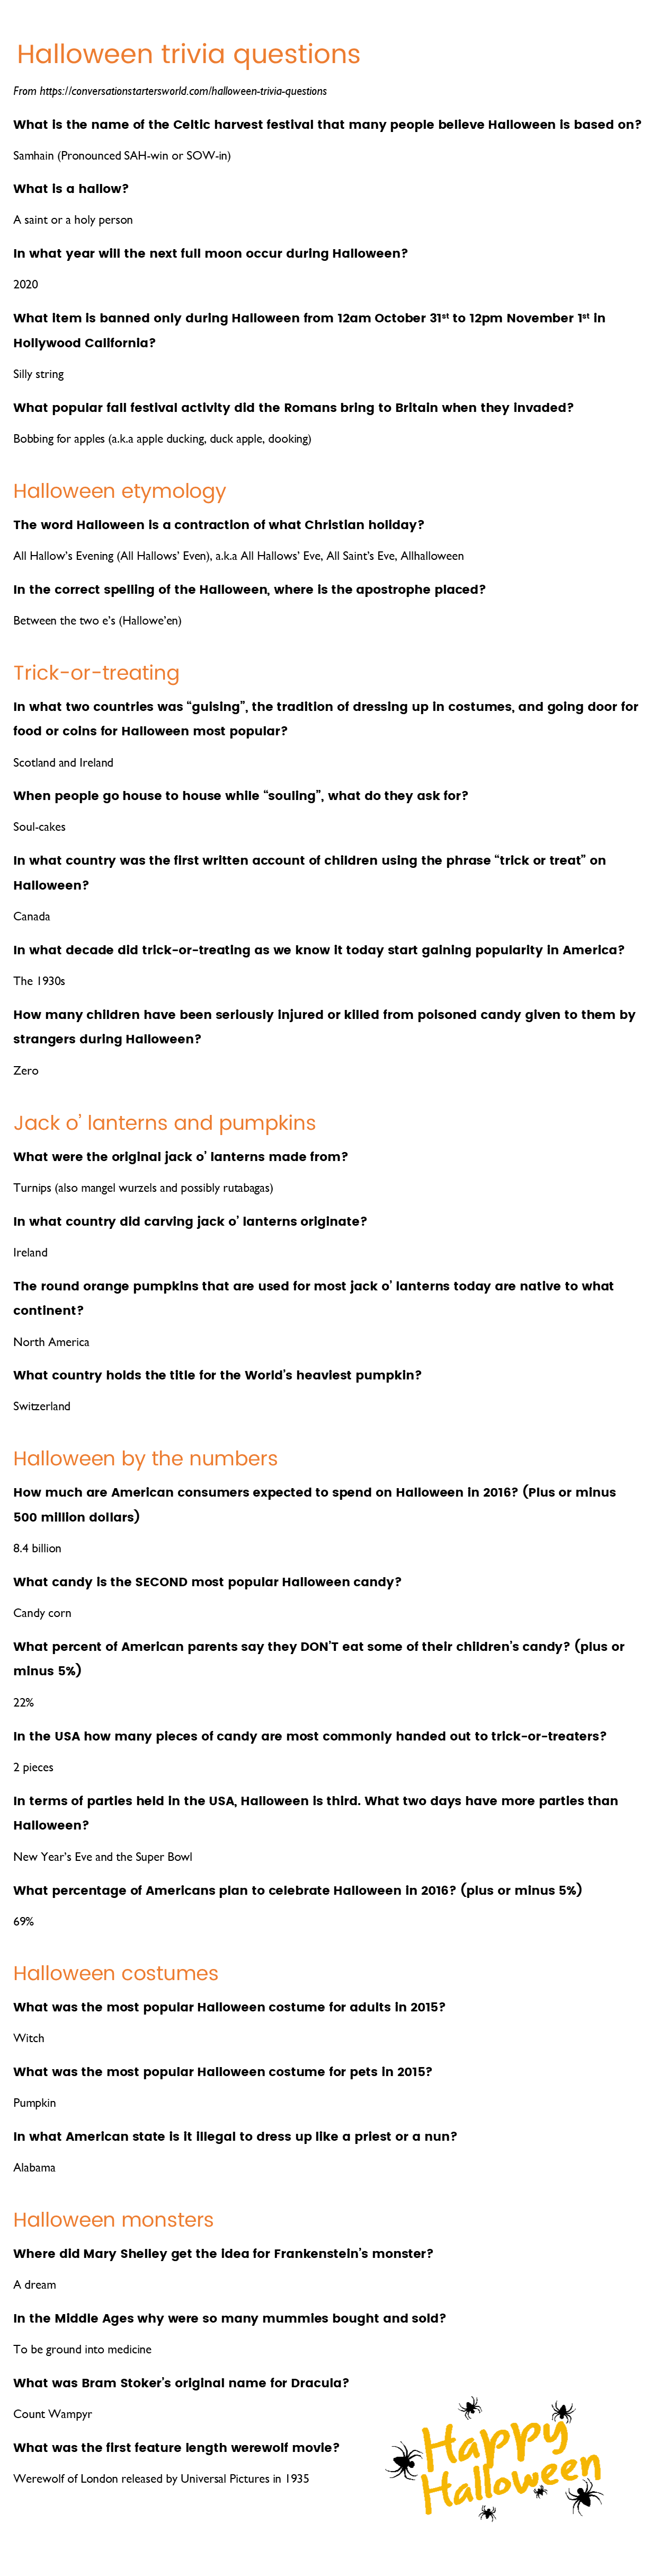 photo relating to Autumn Trivia for Seniors Printable called 29 Physically demanding Halloween Trivia Inquiries - How a lot of can by yourself